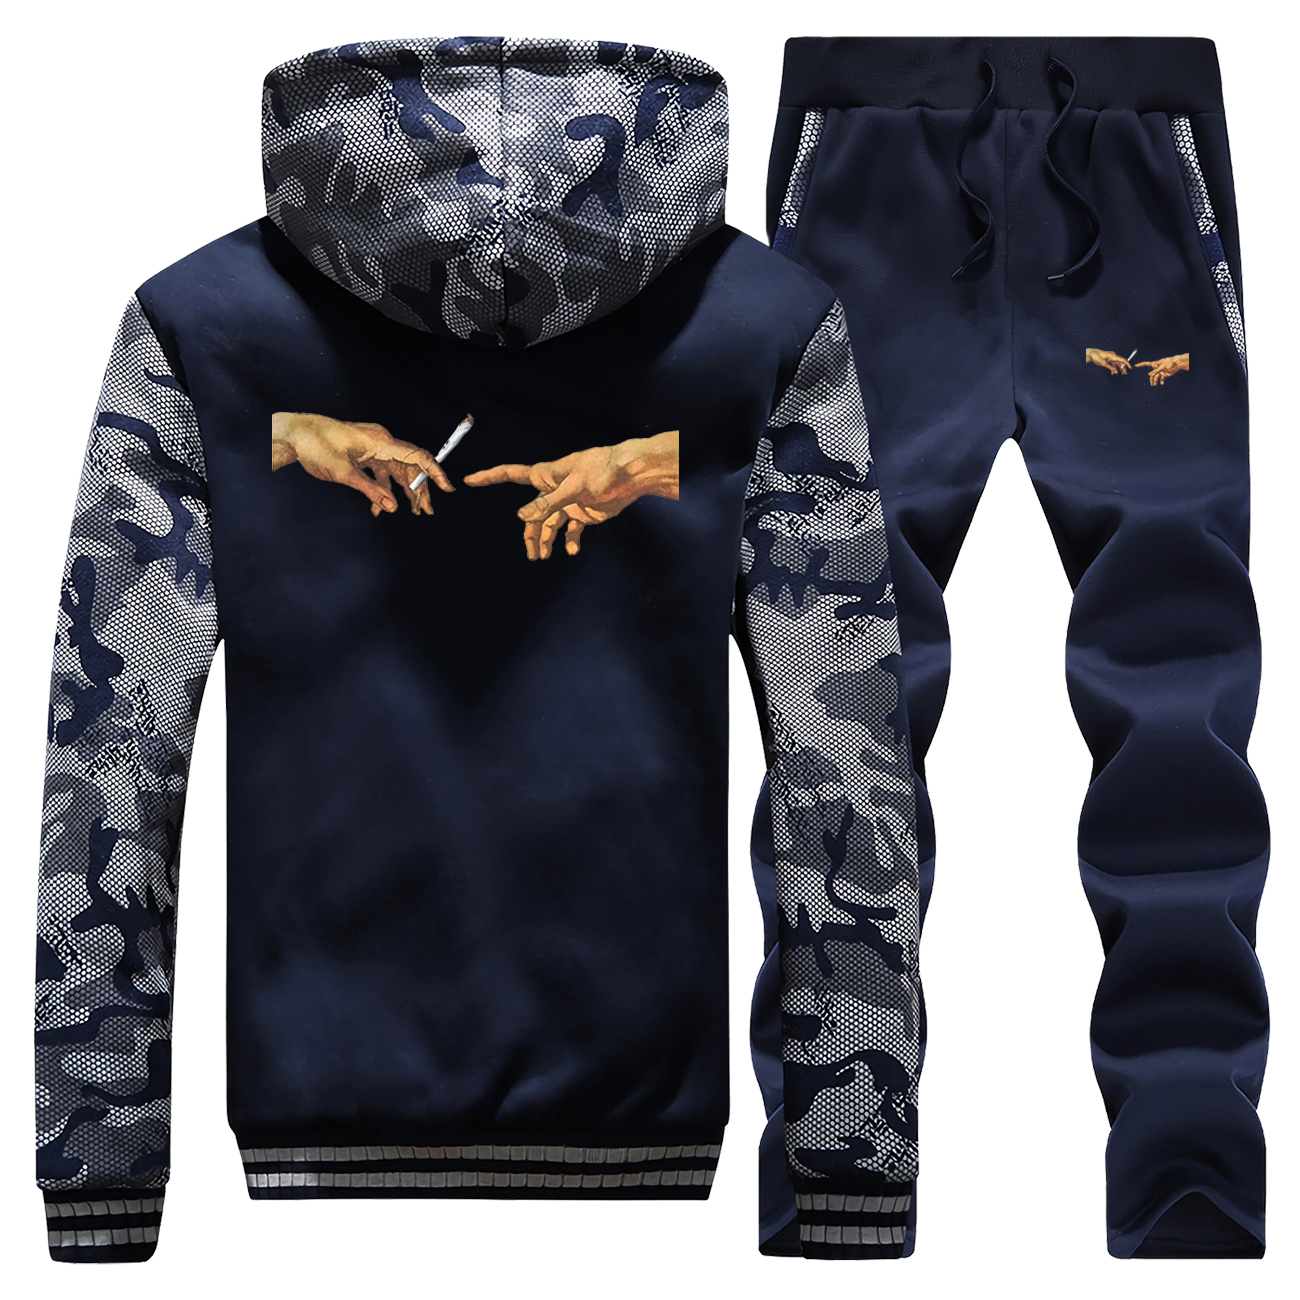 Funny Michelangelo Genesis Camo Hoodies Pants 2 Piece Sets Men Winter Fleece Sportswear Sweatpants Casual Tracksuit Sweatshirt